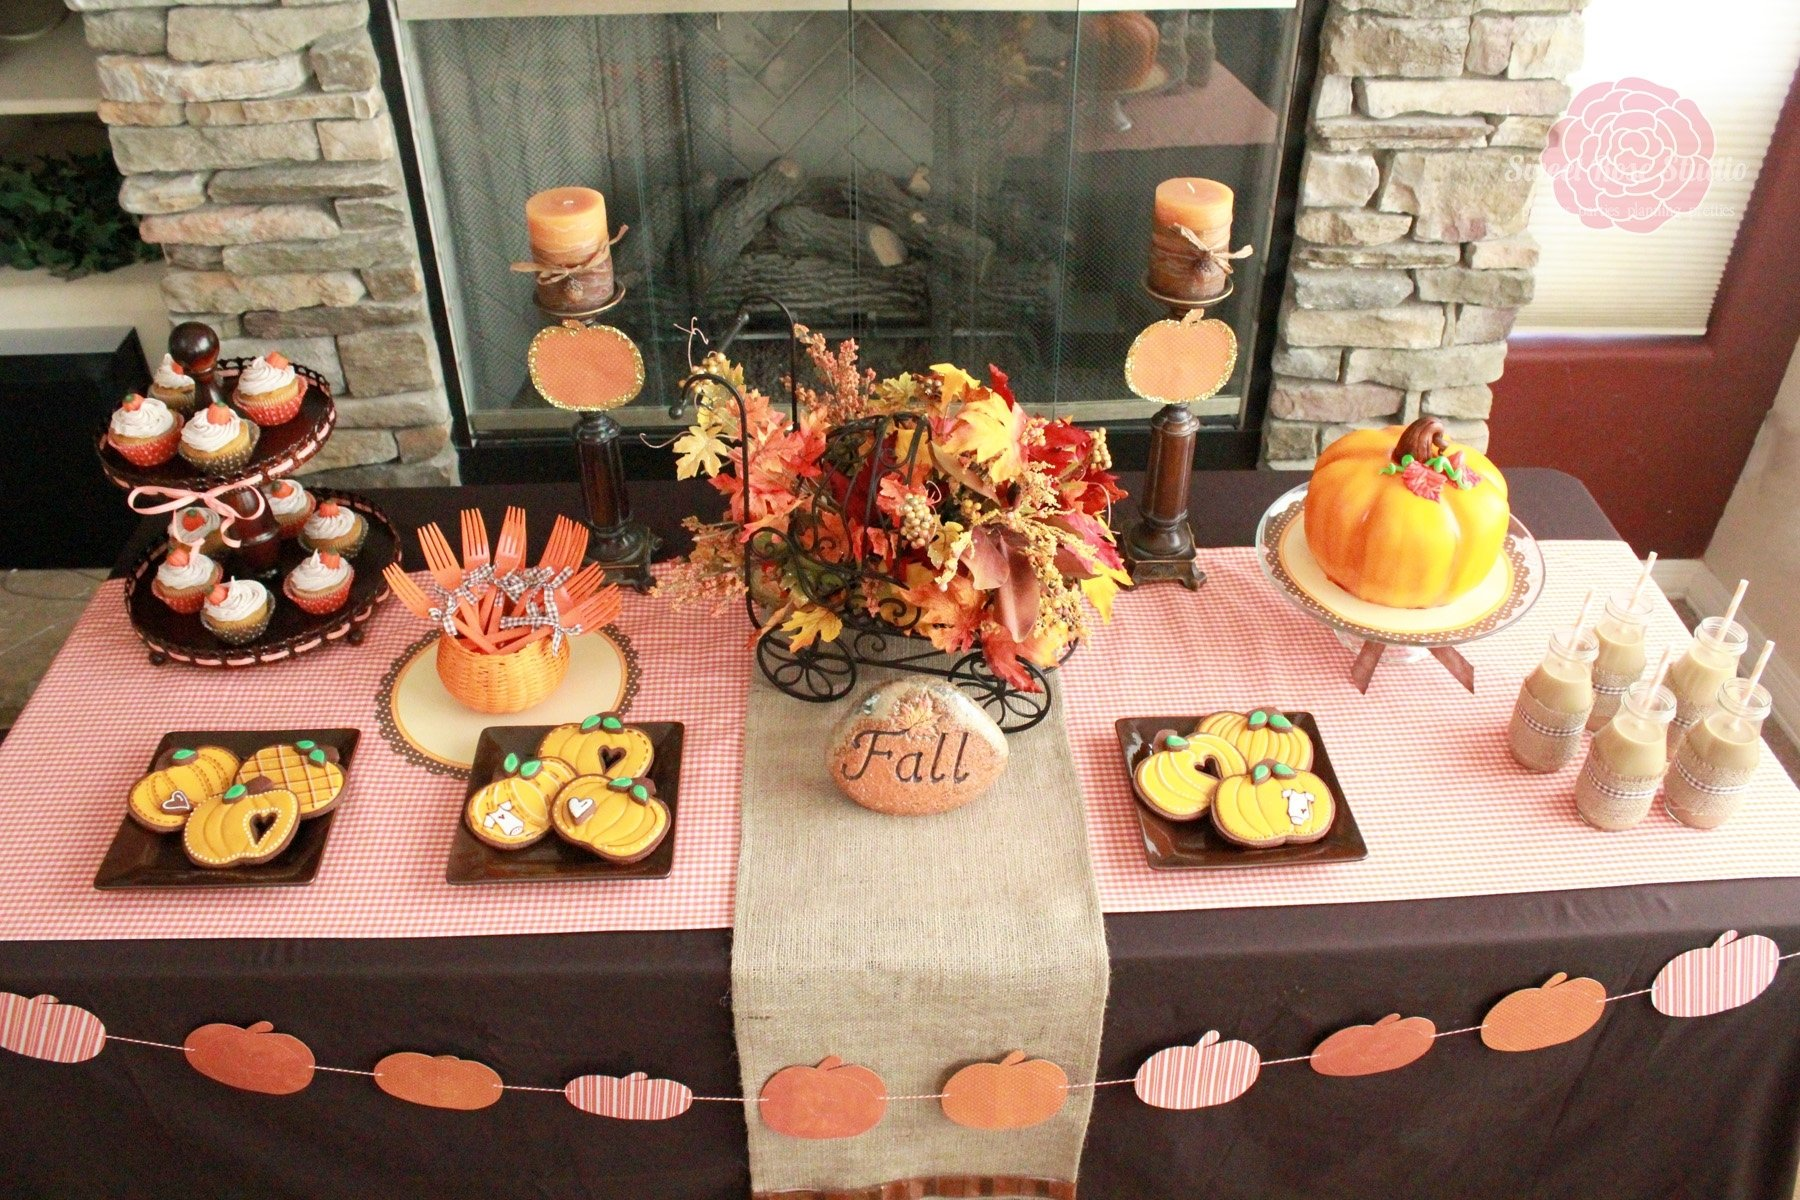 10 Gorgeous Fall Themed Baby Shower Ideas photo fall baby shower drinks image ideas girls loversiq 2020